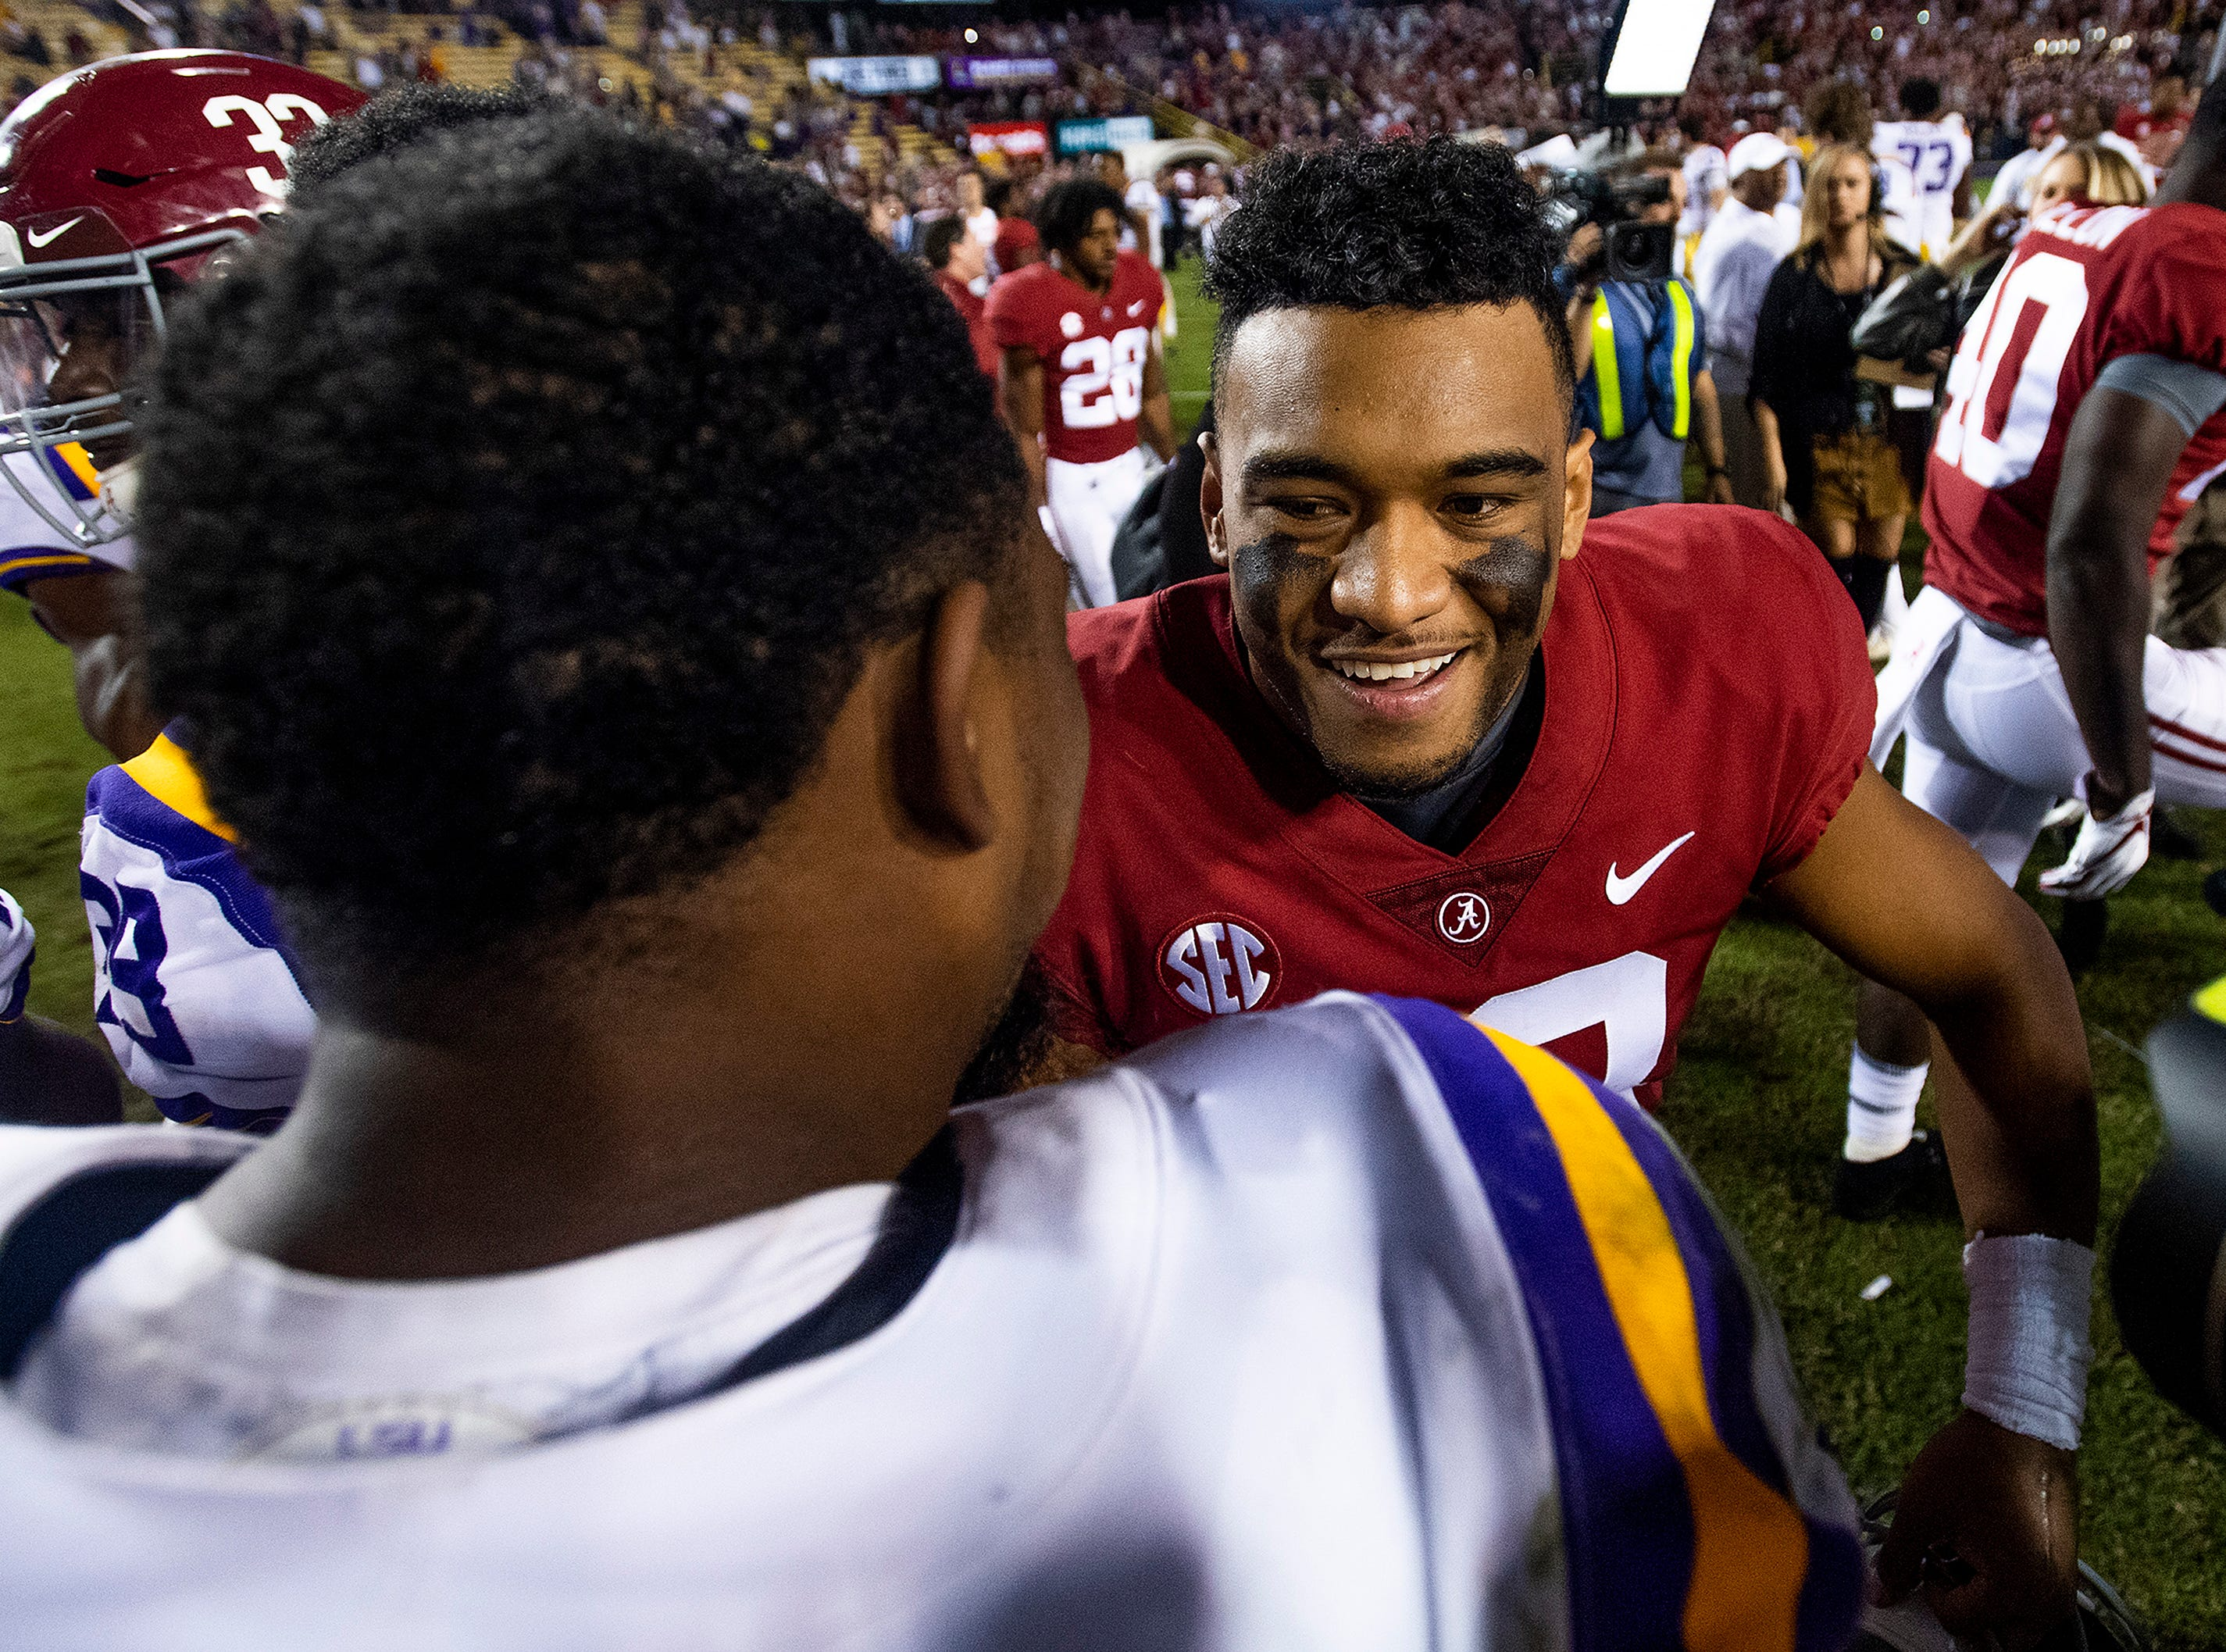 Alabama quarterback Tua Tagovailoa (13) hugs Louisiana State University outside linebacker Michael Divinity, Jr., (45) after defeating LSU at Tiger Stadium in Baton Rouge, La., on Saturday November 3, 2018.